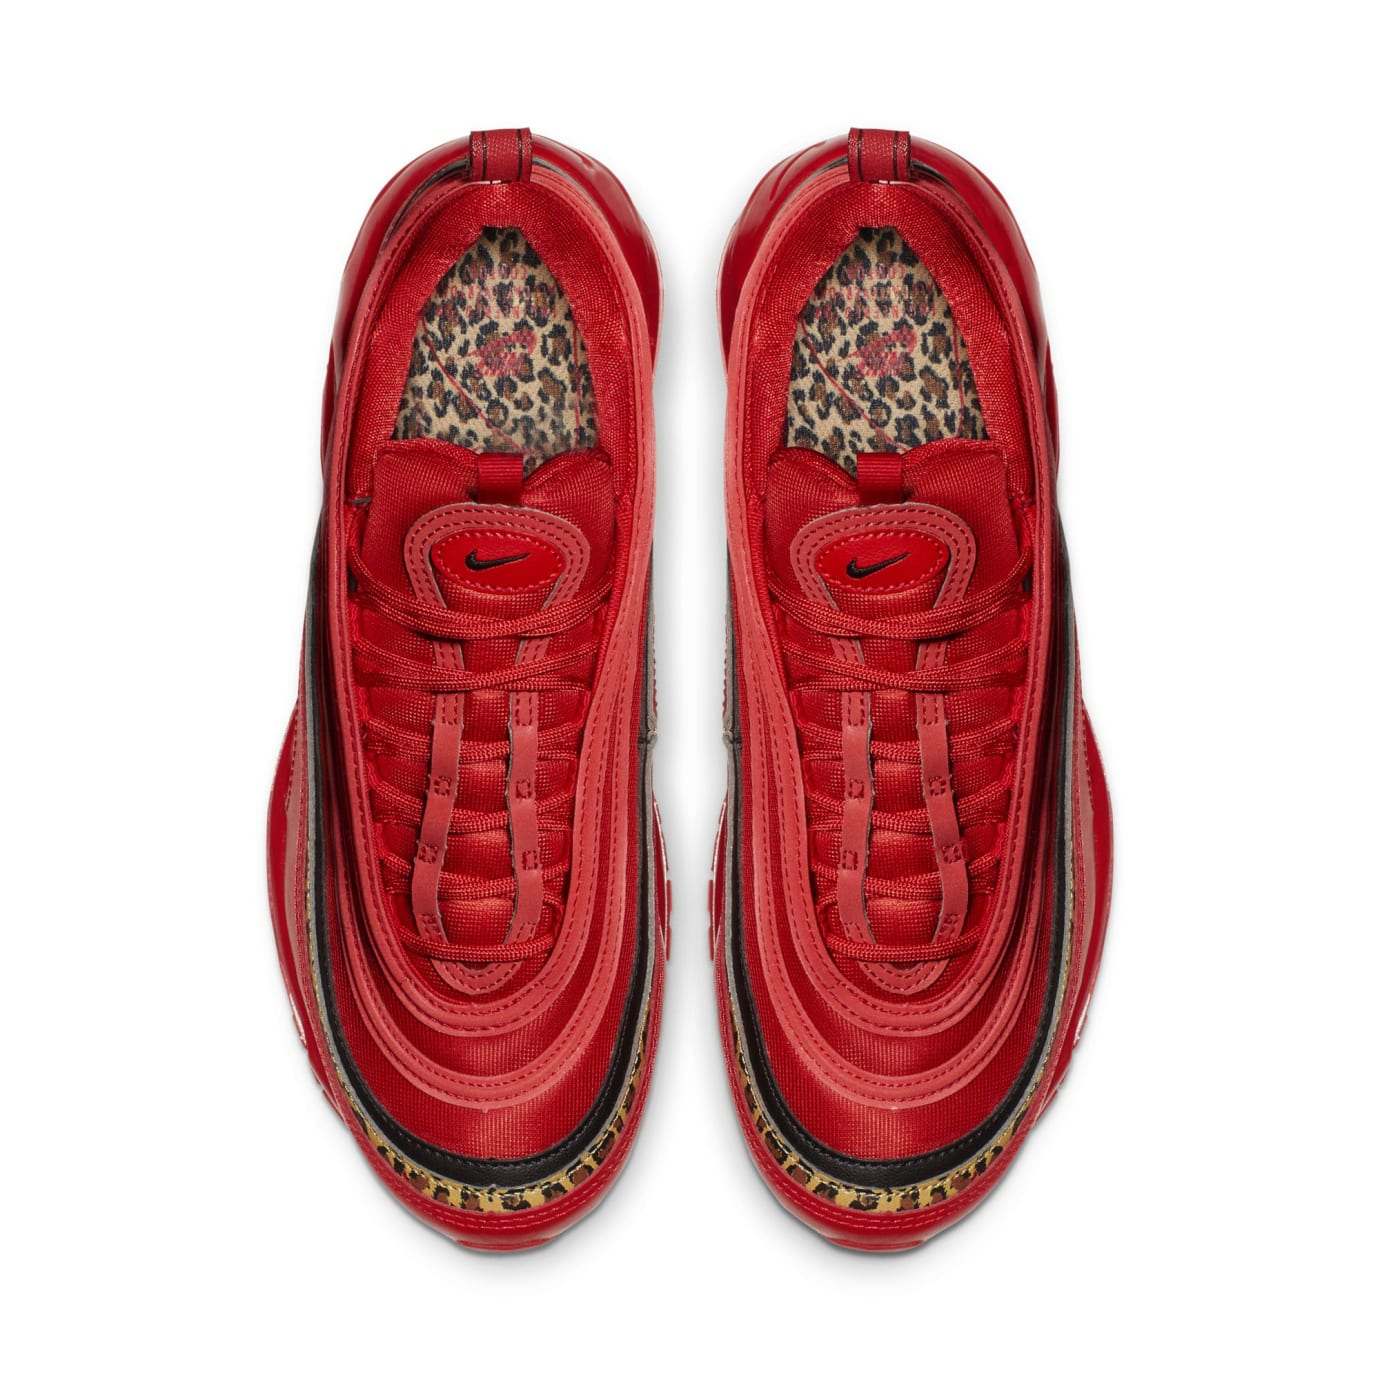 Nike Air Max 97 'Red/Leopard' (Top)